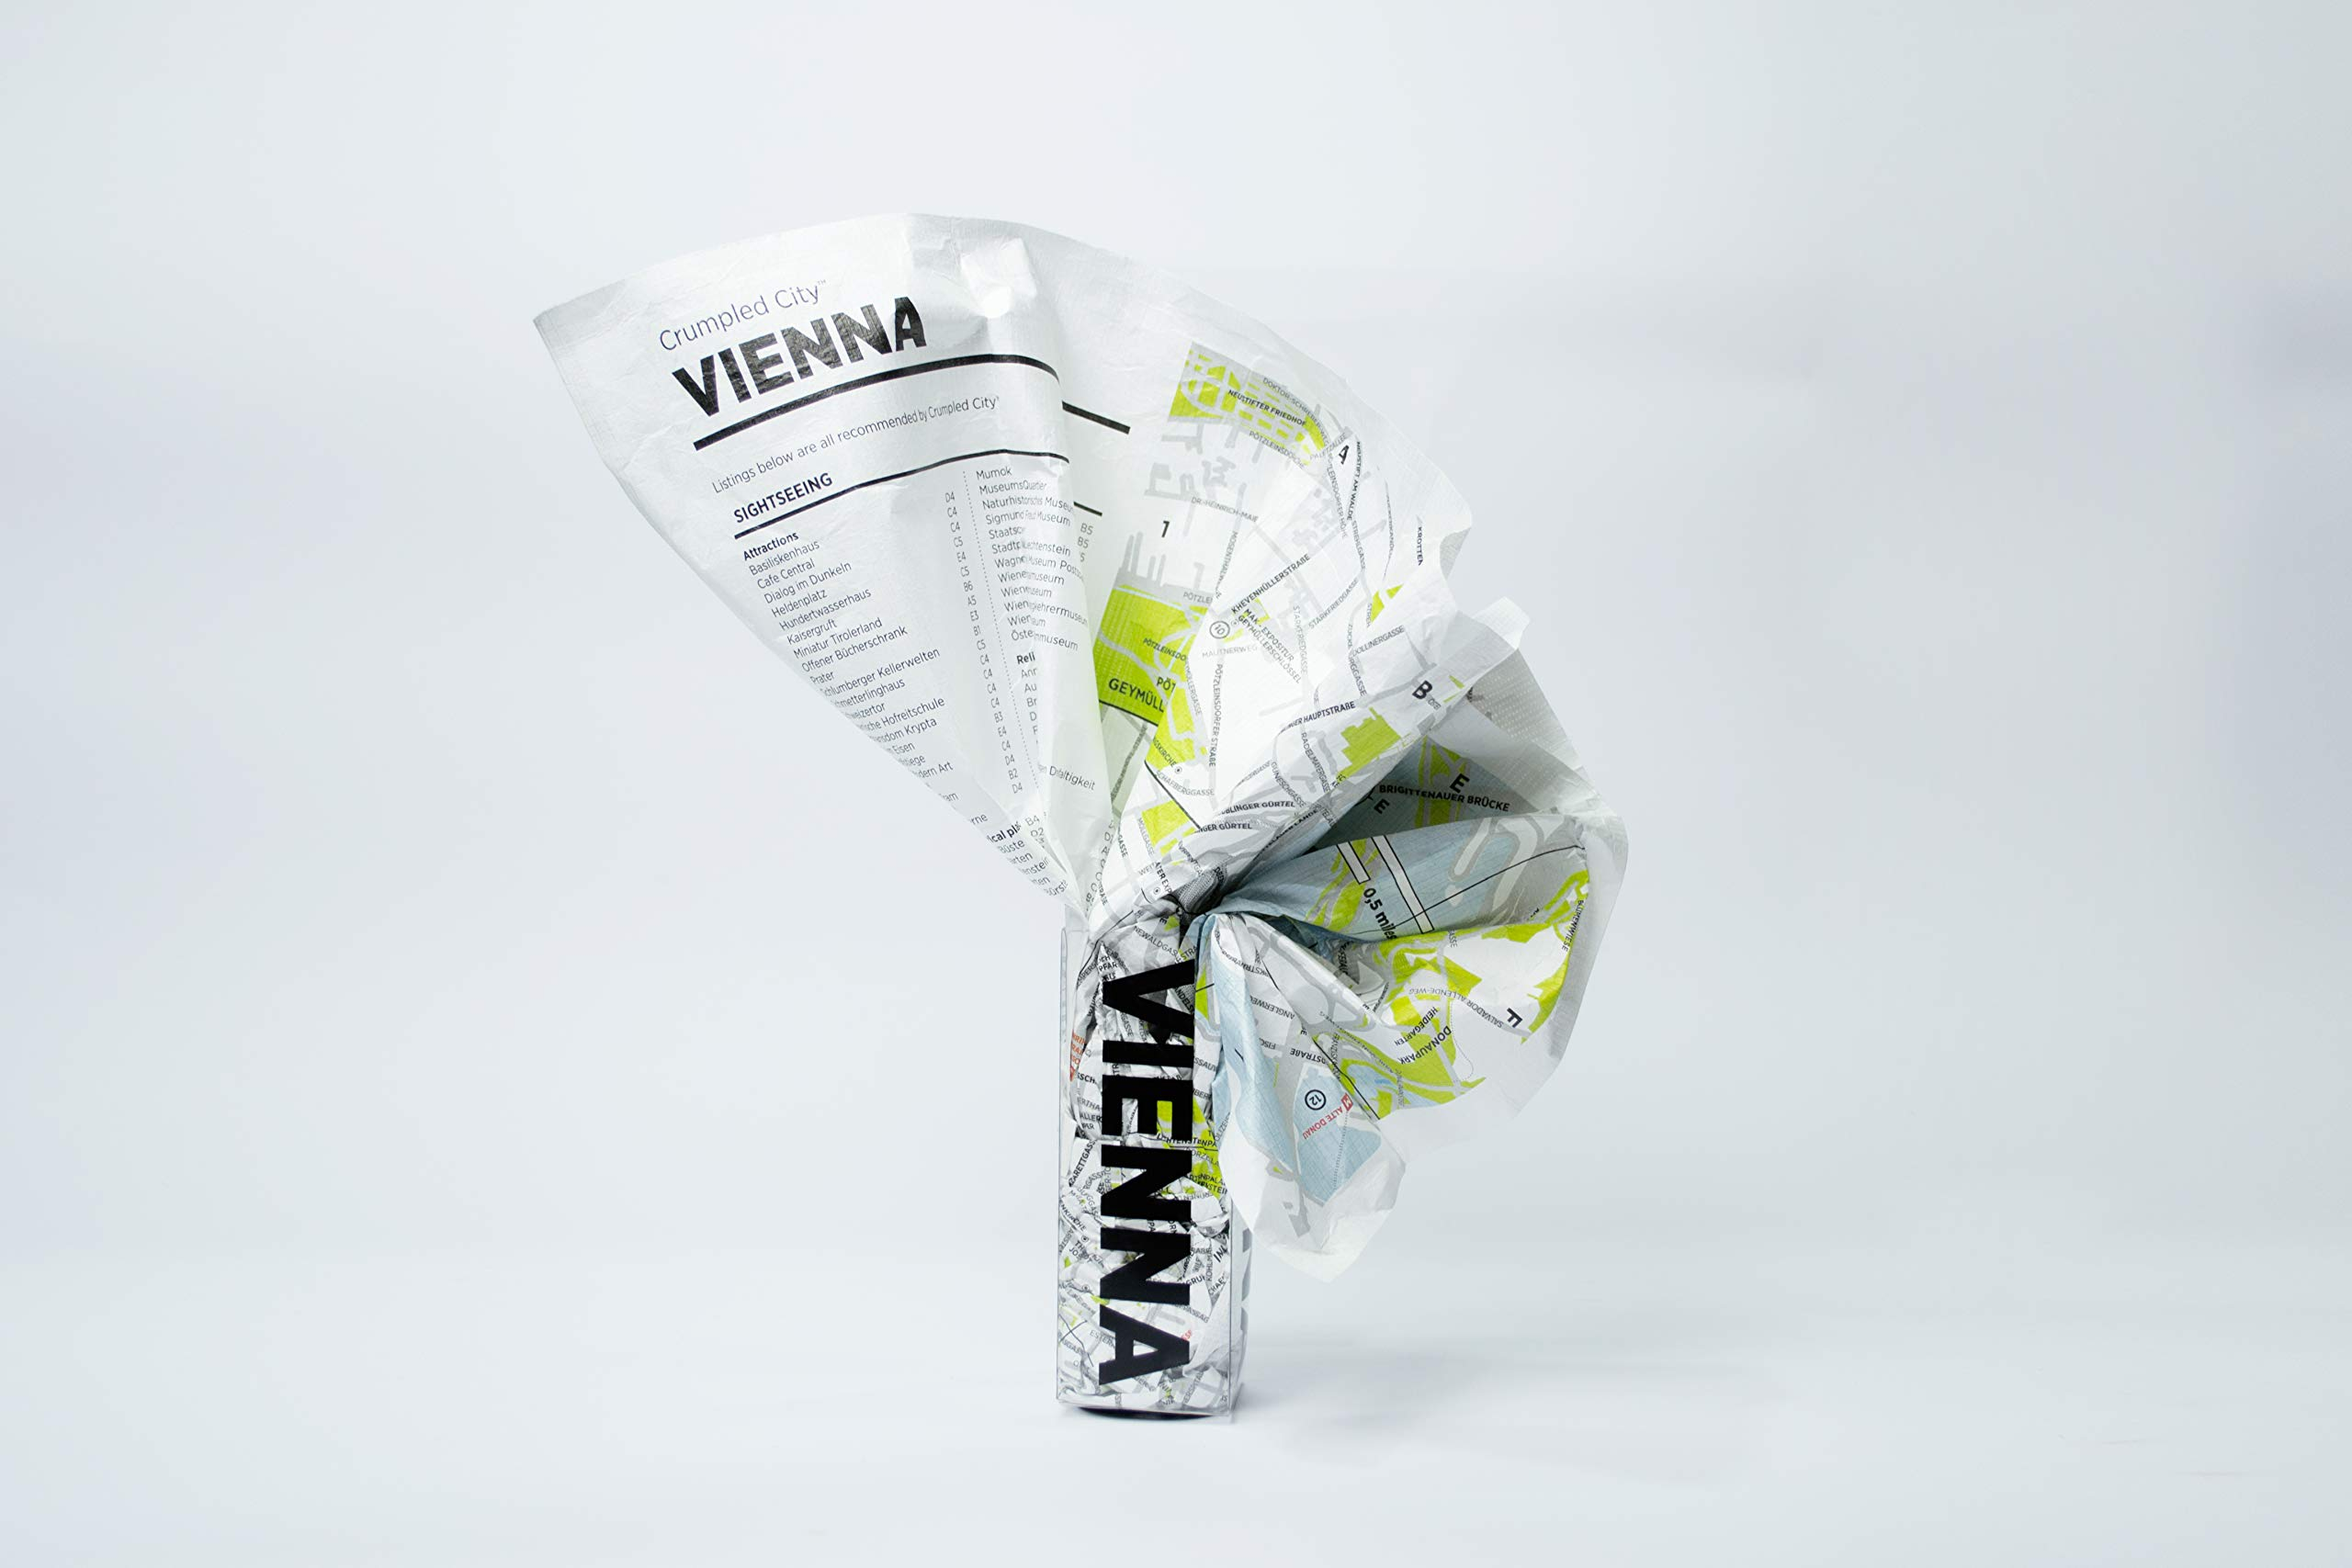 Crumpled City Map-Vienna: Palomar S.r.l.: 9788897487104 ...